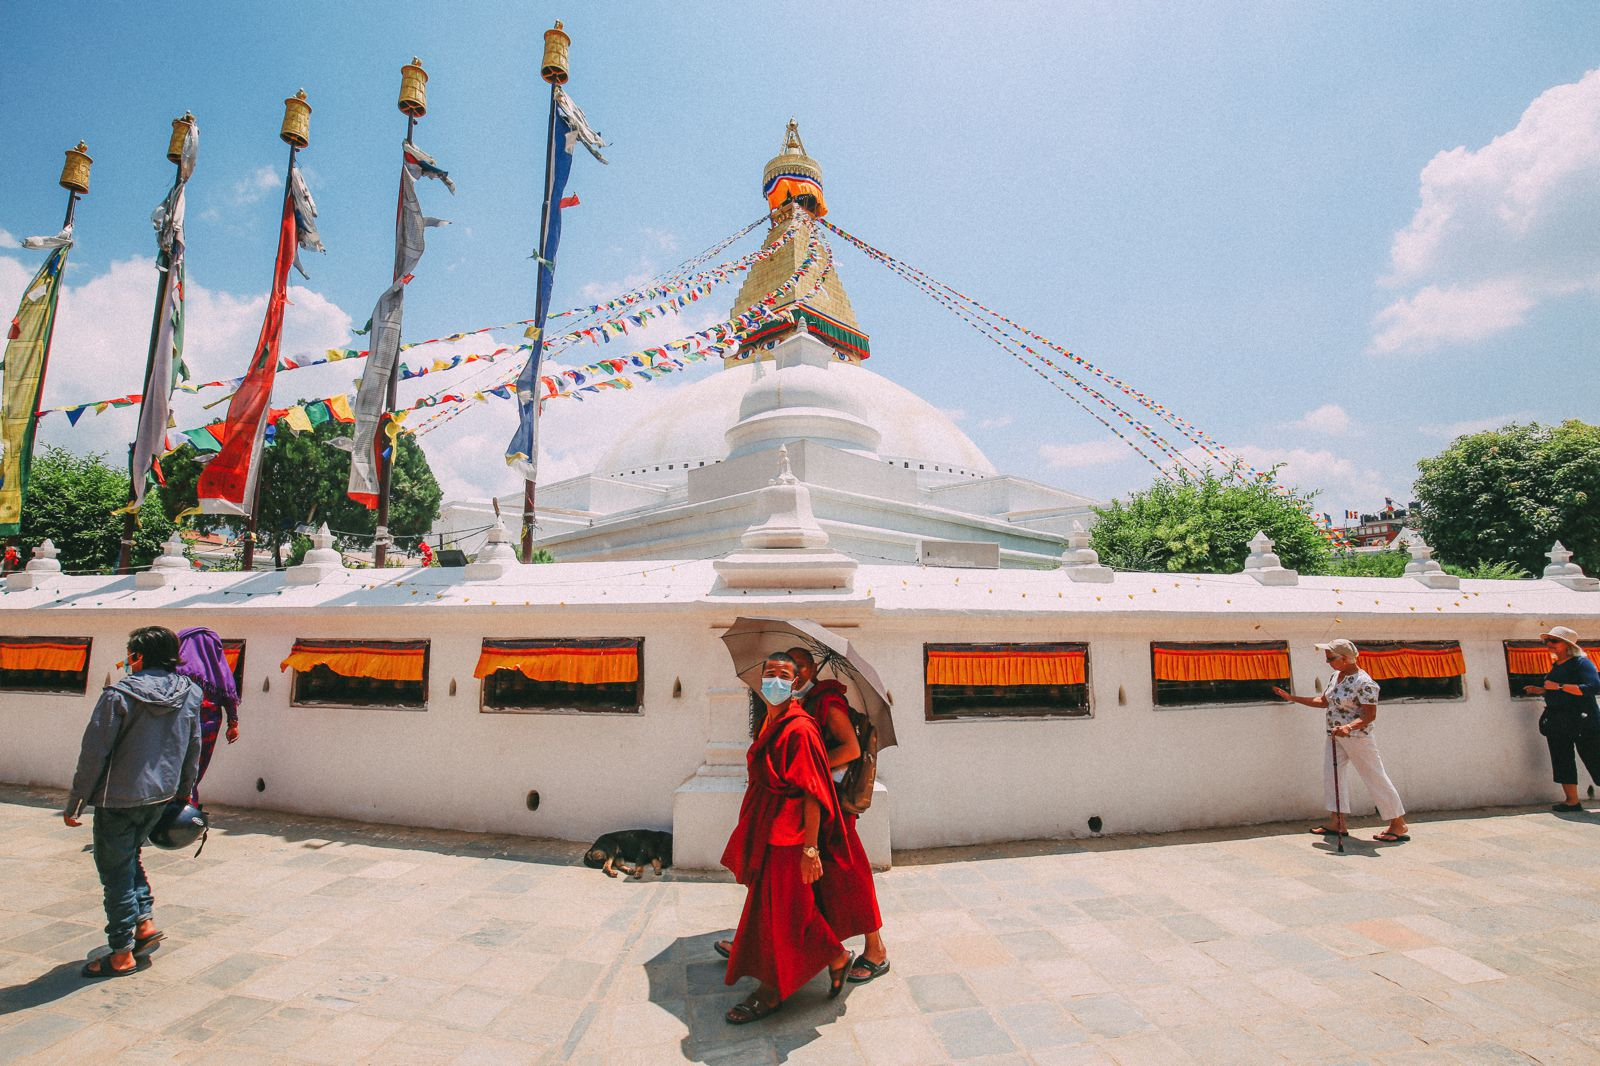 The UNESCO World Heritage Site Of Boudhanath Stupa In Kathmandu, Nepal (4)